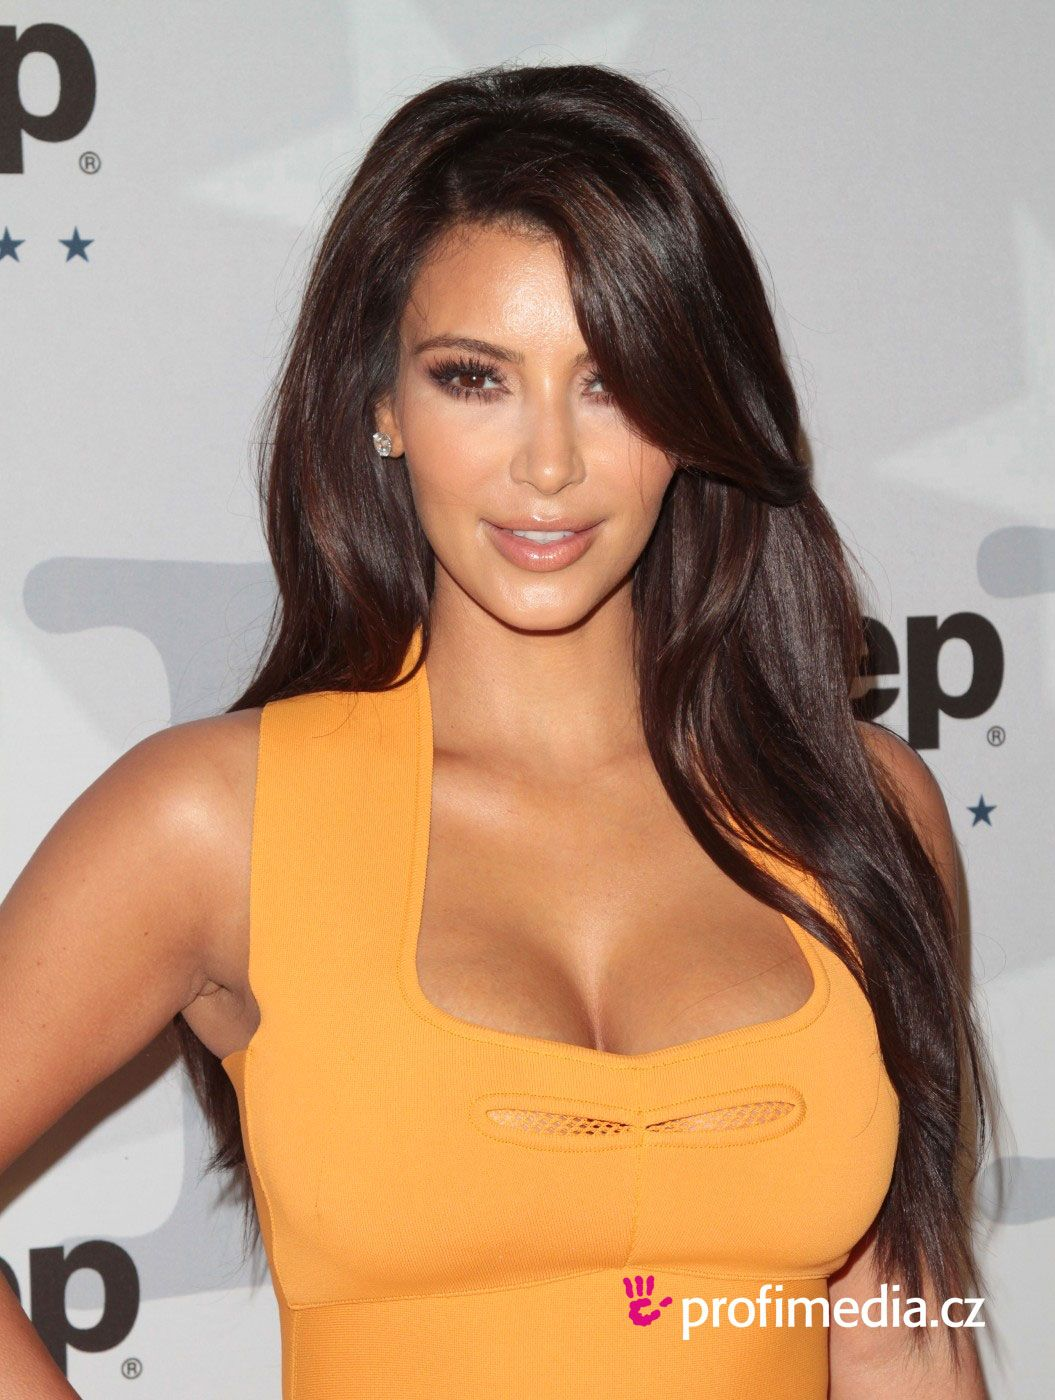 Coiffures Kim Kardashian And Bangs On Pinterest